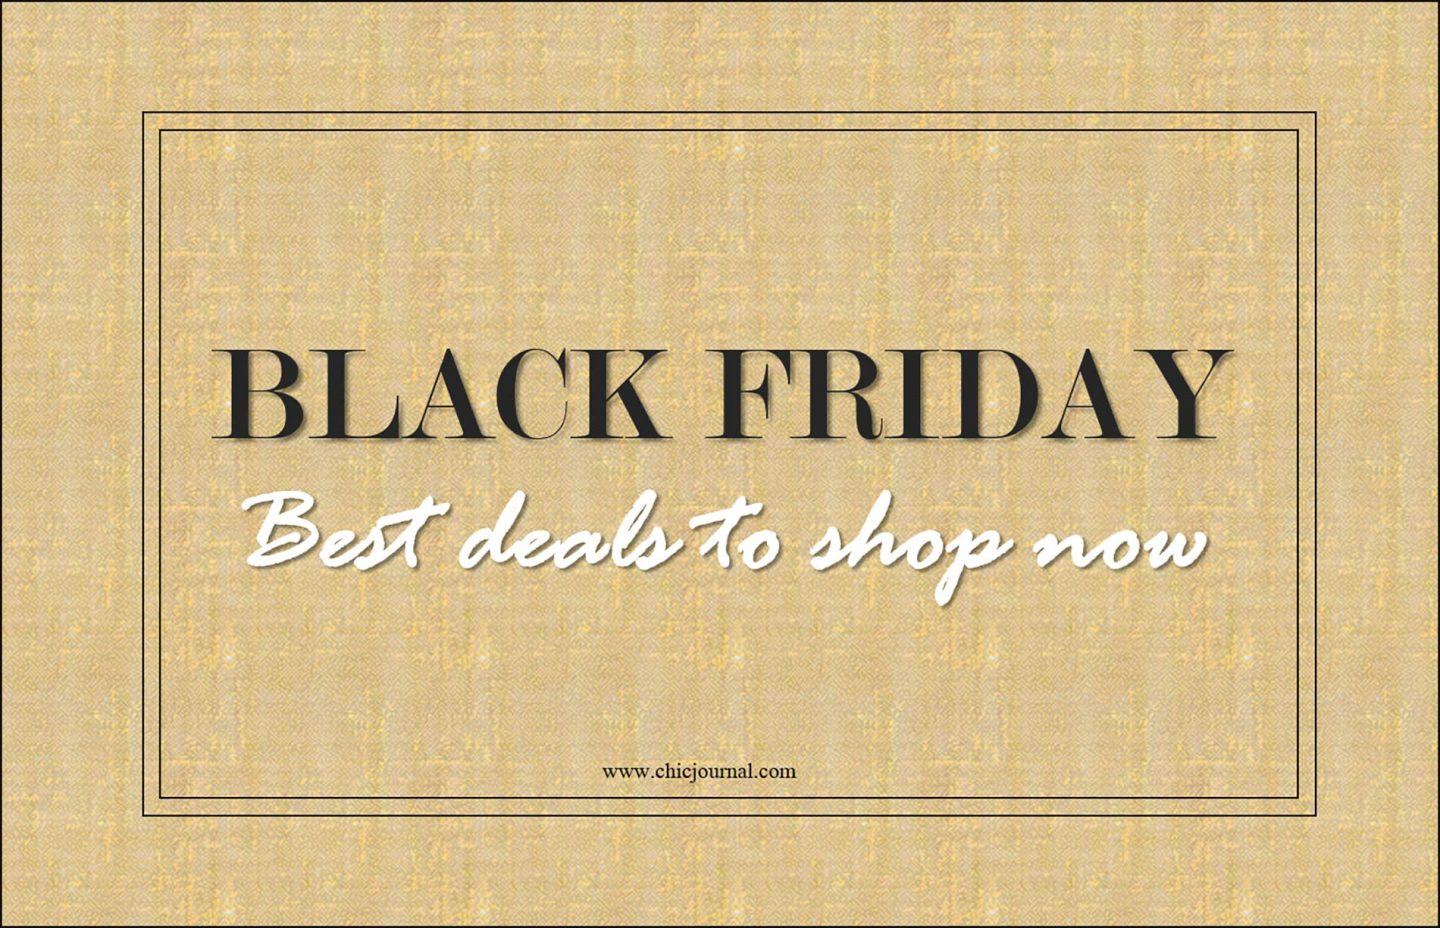 Black Friday SALES! The best deals you don't want to miss!